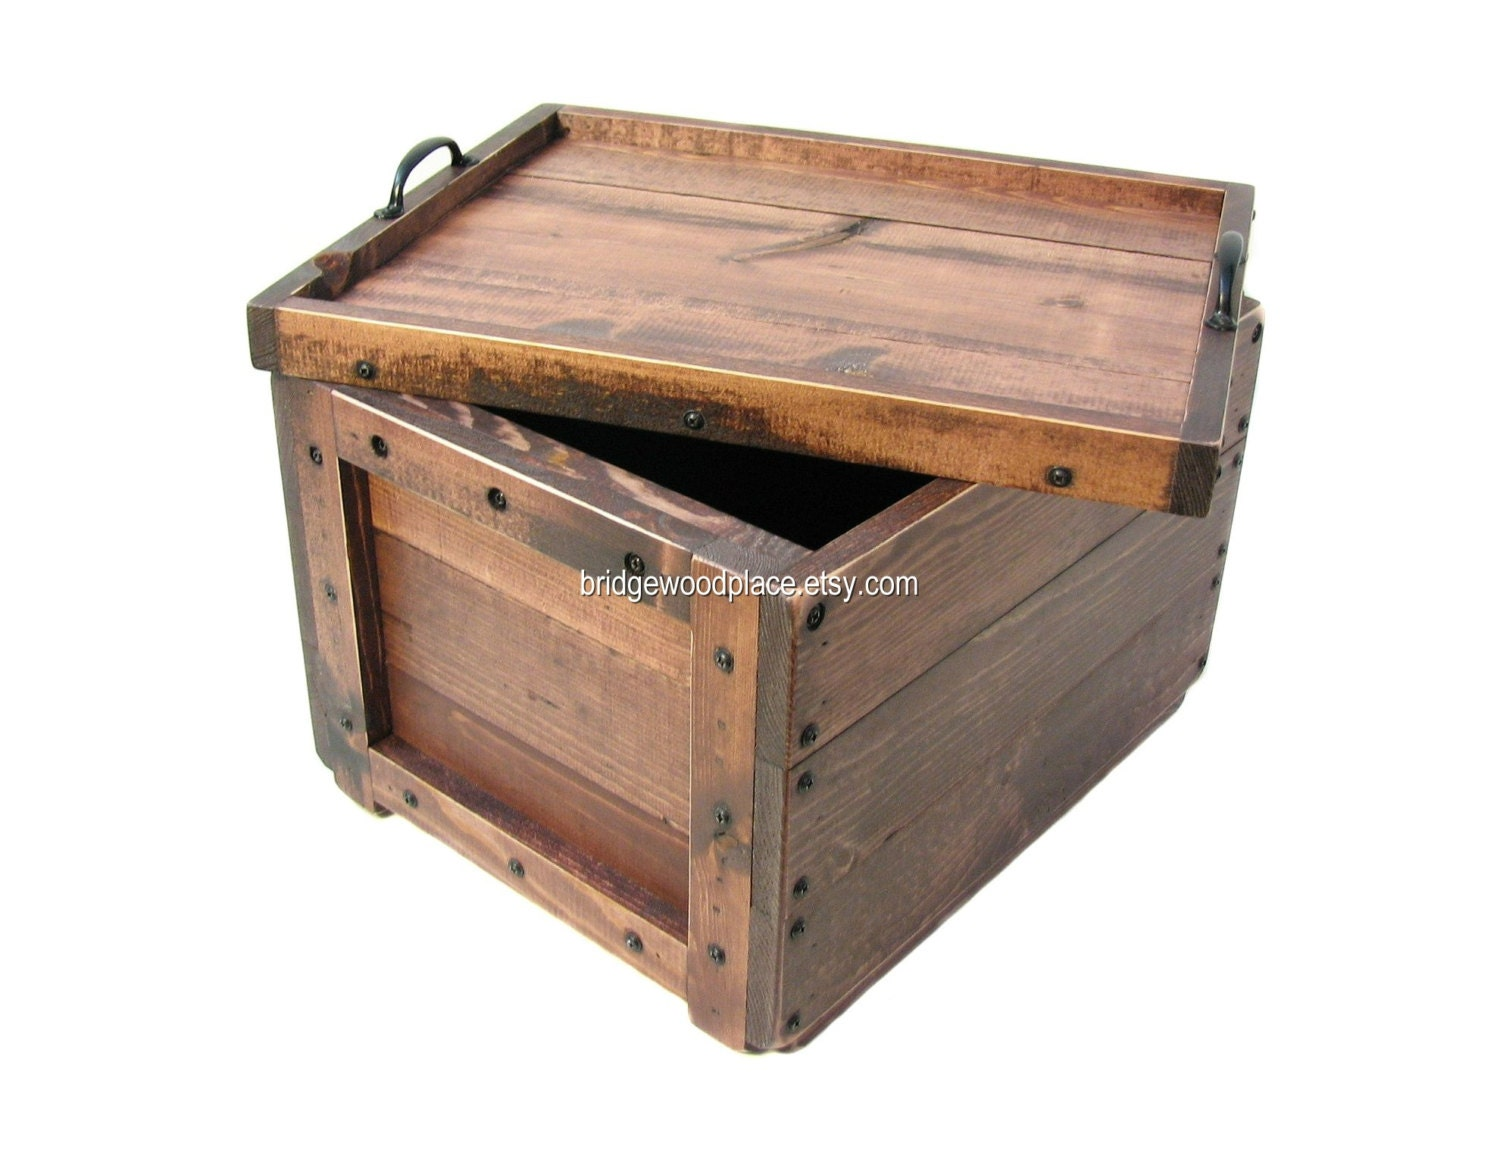 Lidded Wood Crate Wooden Box With Lid Keepsake By Bridgewoodplace